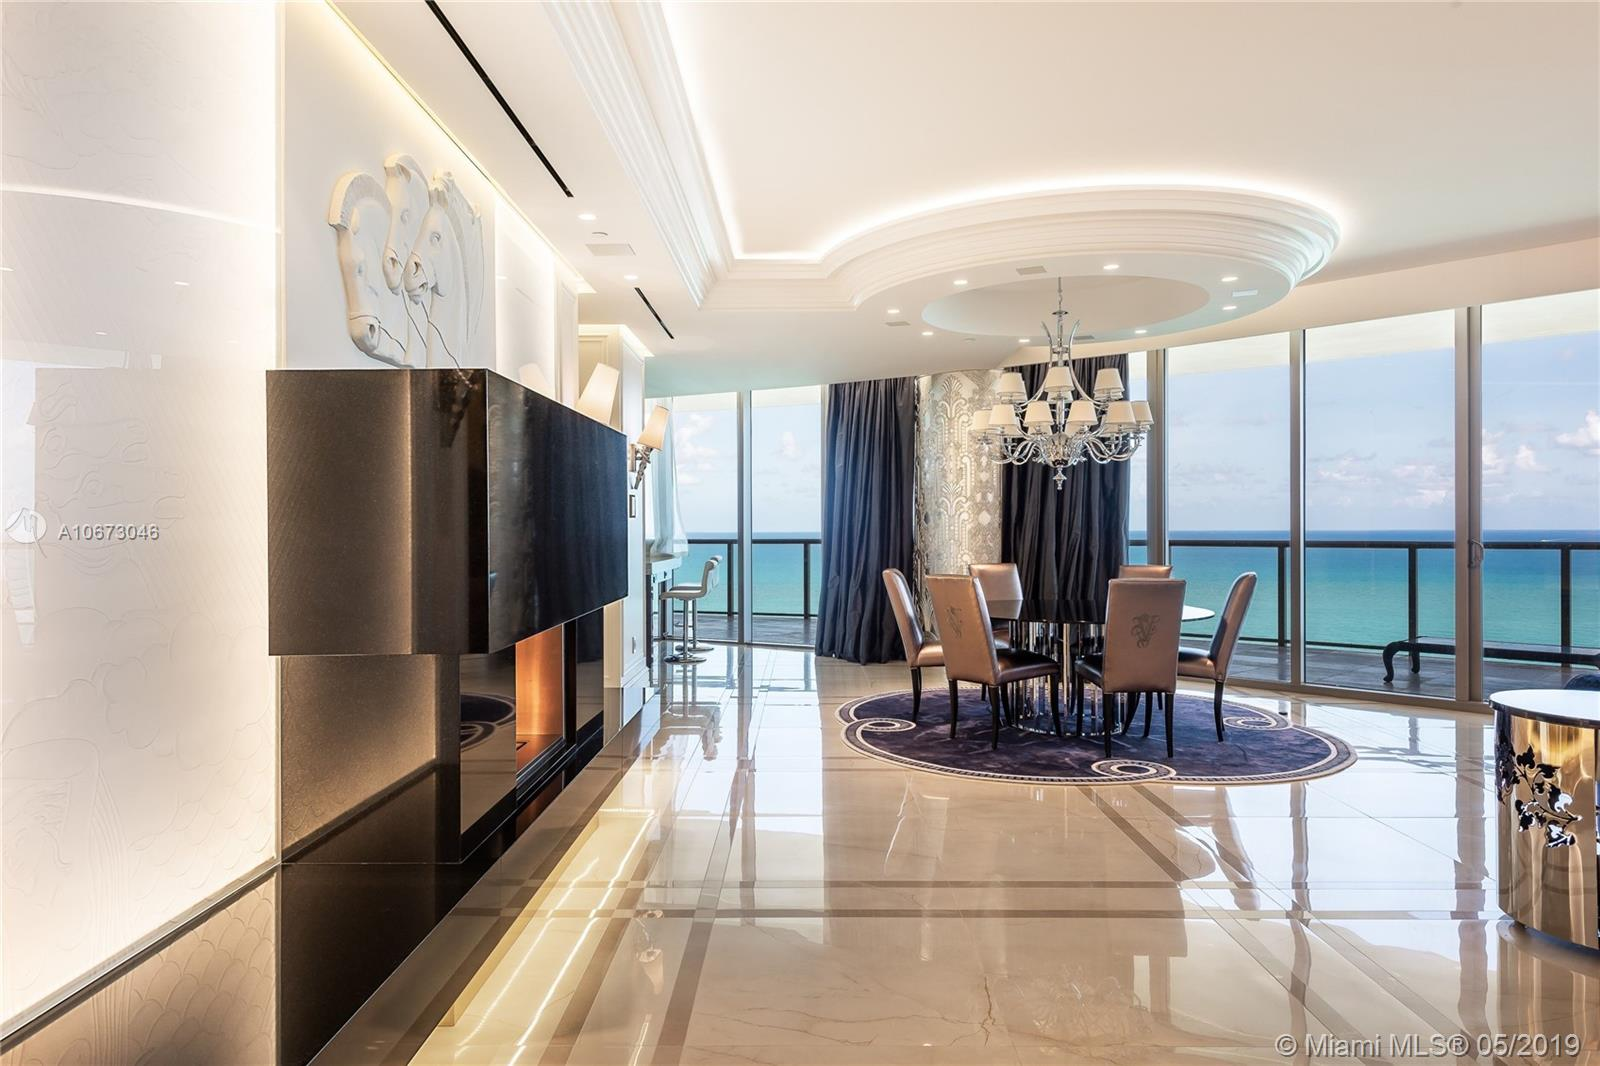 image #1 of property, Bal Harbour Center Condo, Unit 2600